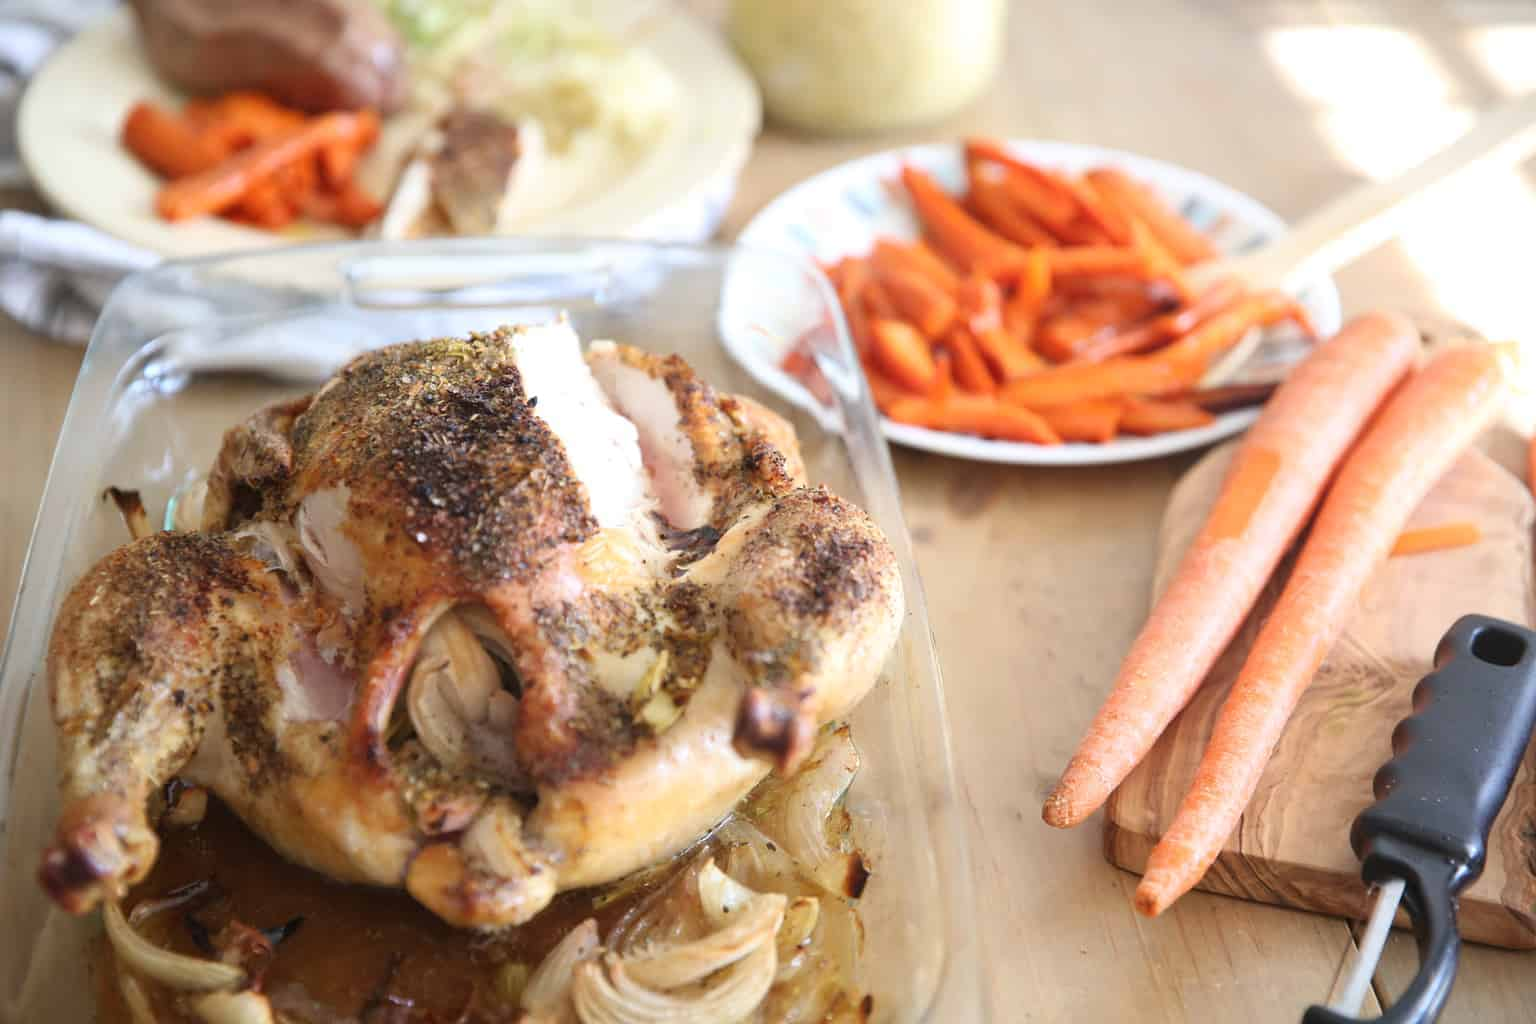 How to roast a whole chicken and vegetables. Healthy whole 30 chicken dinner for the whole family. Kid friendly meal ideas.